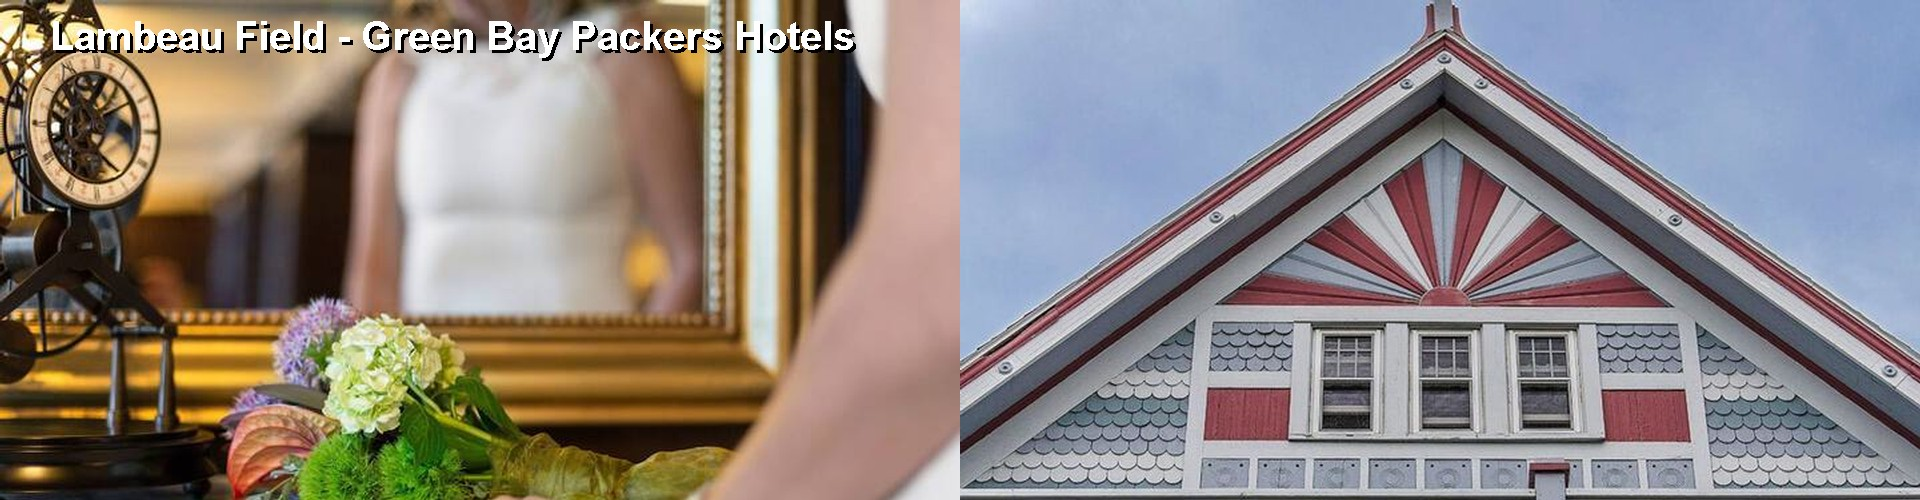 $42+ Hotels Near Lambeau Field Green Bay Packers WI